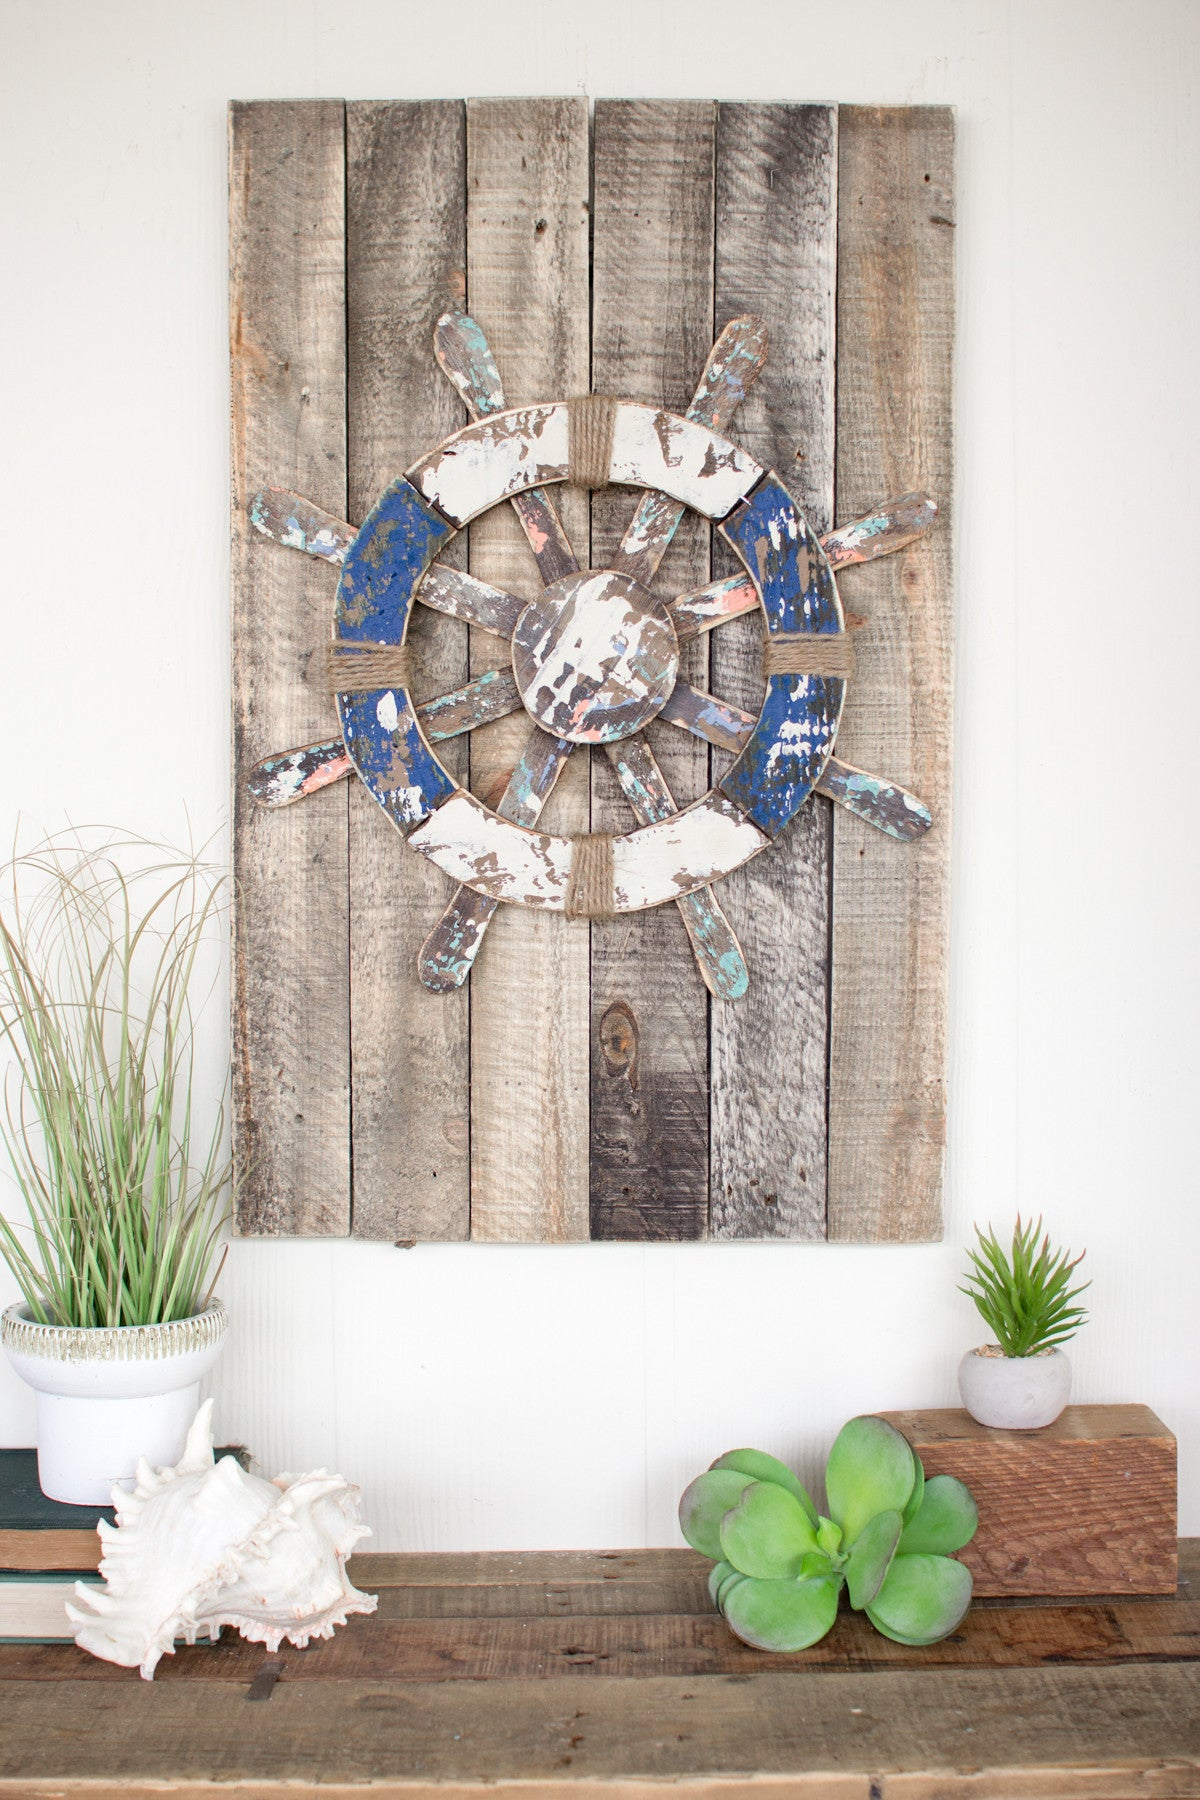 WOODEN SHIP'S WHEEL WALL ART